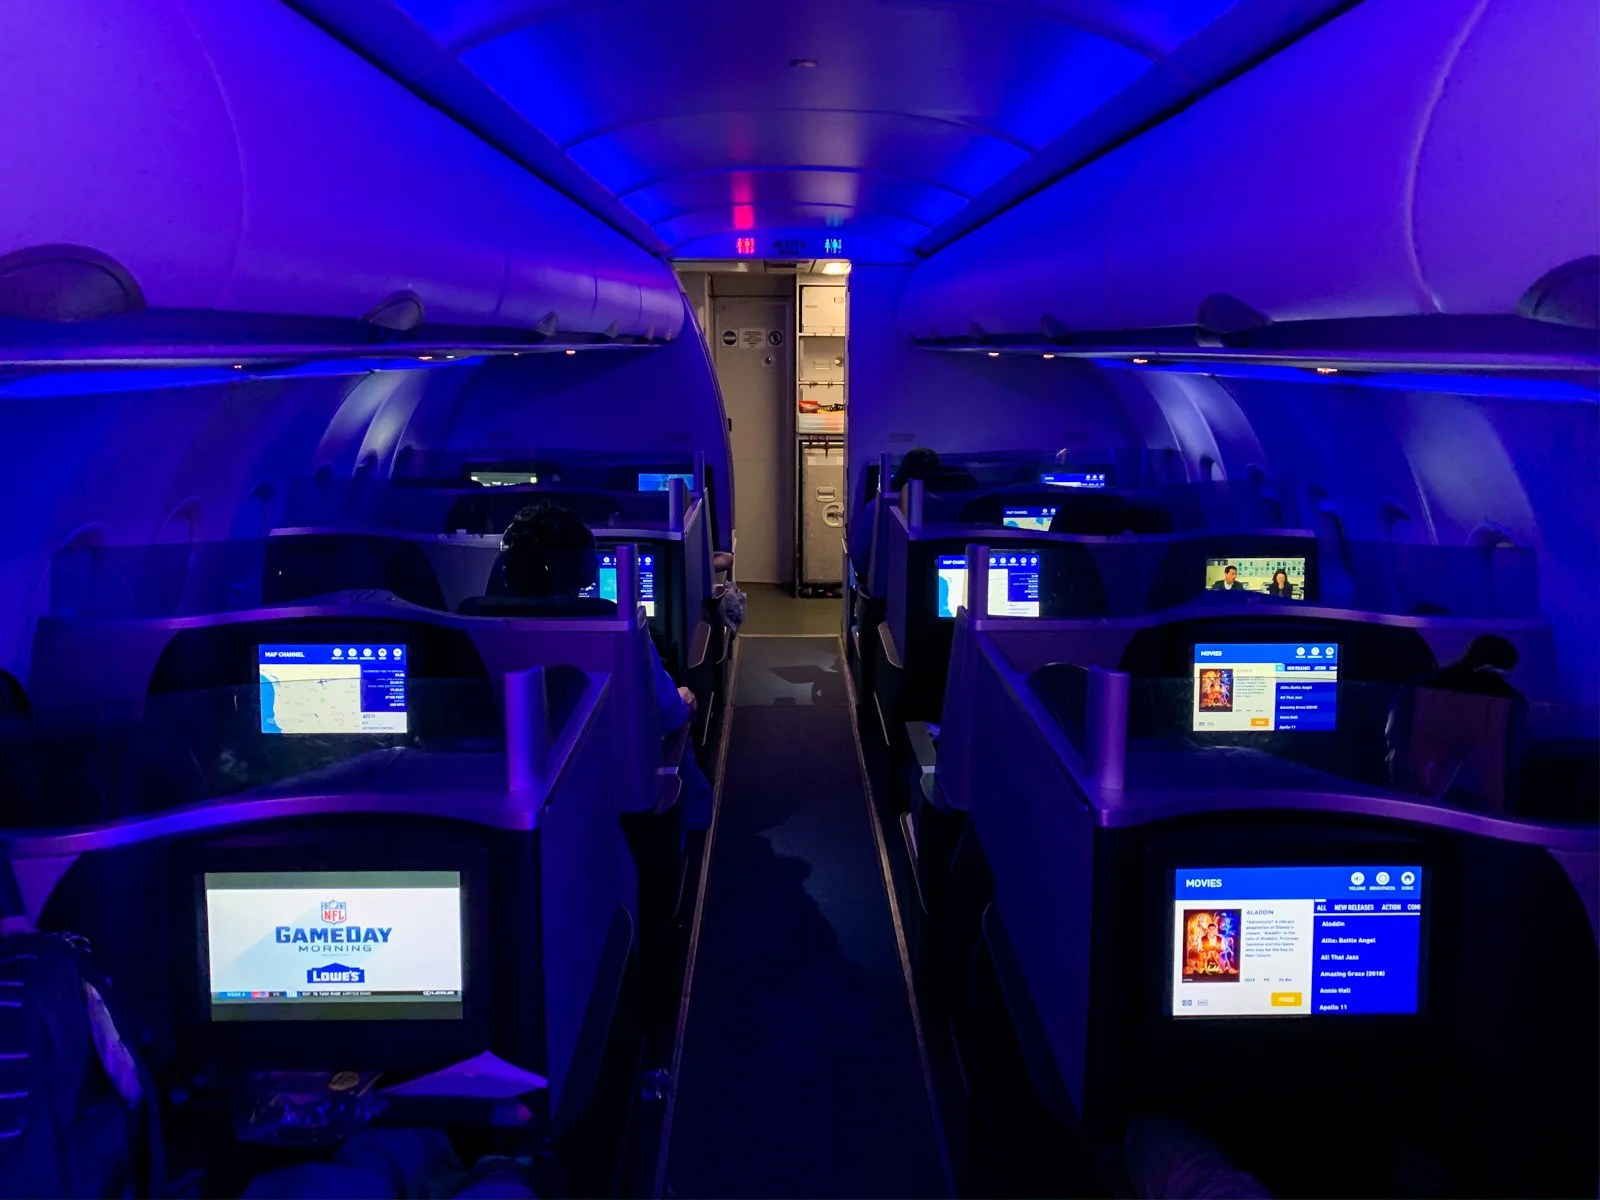 The ultimate guide to earning JetBlue TrueBlue points